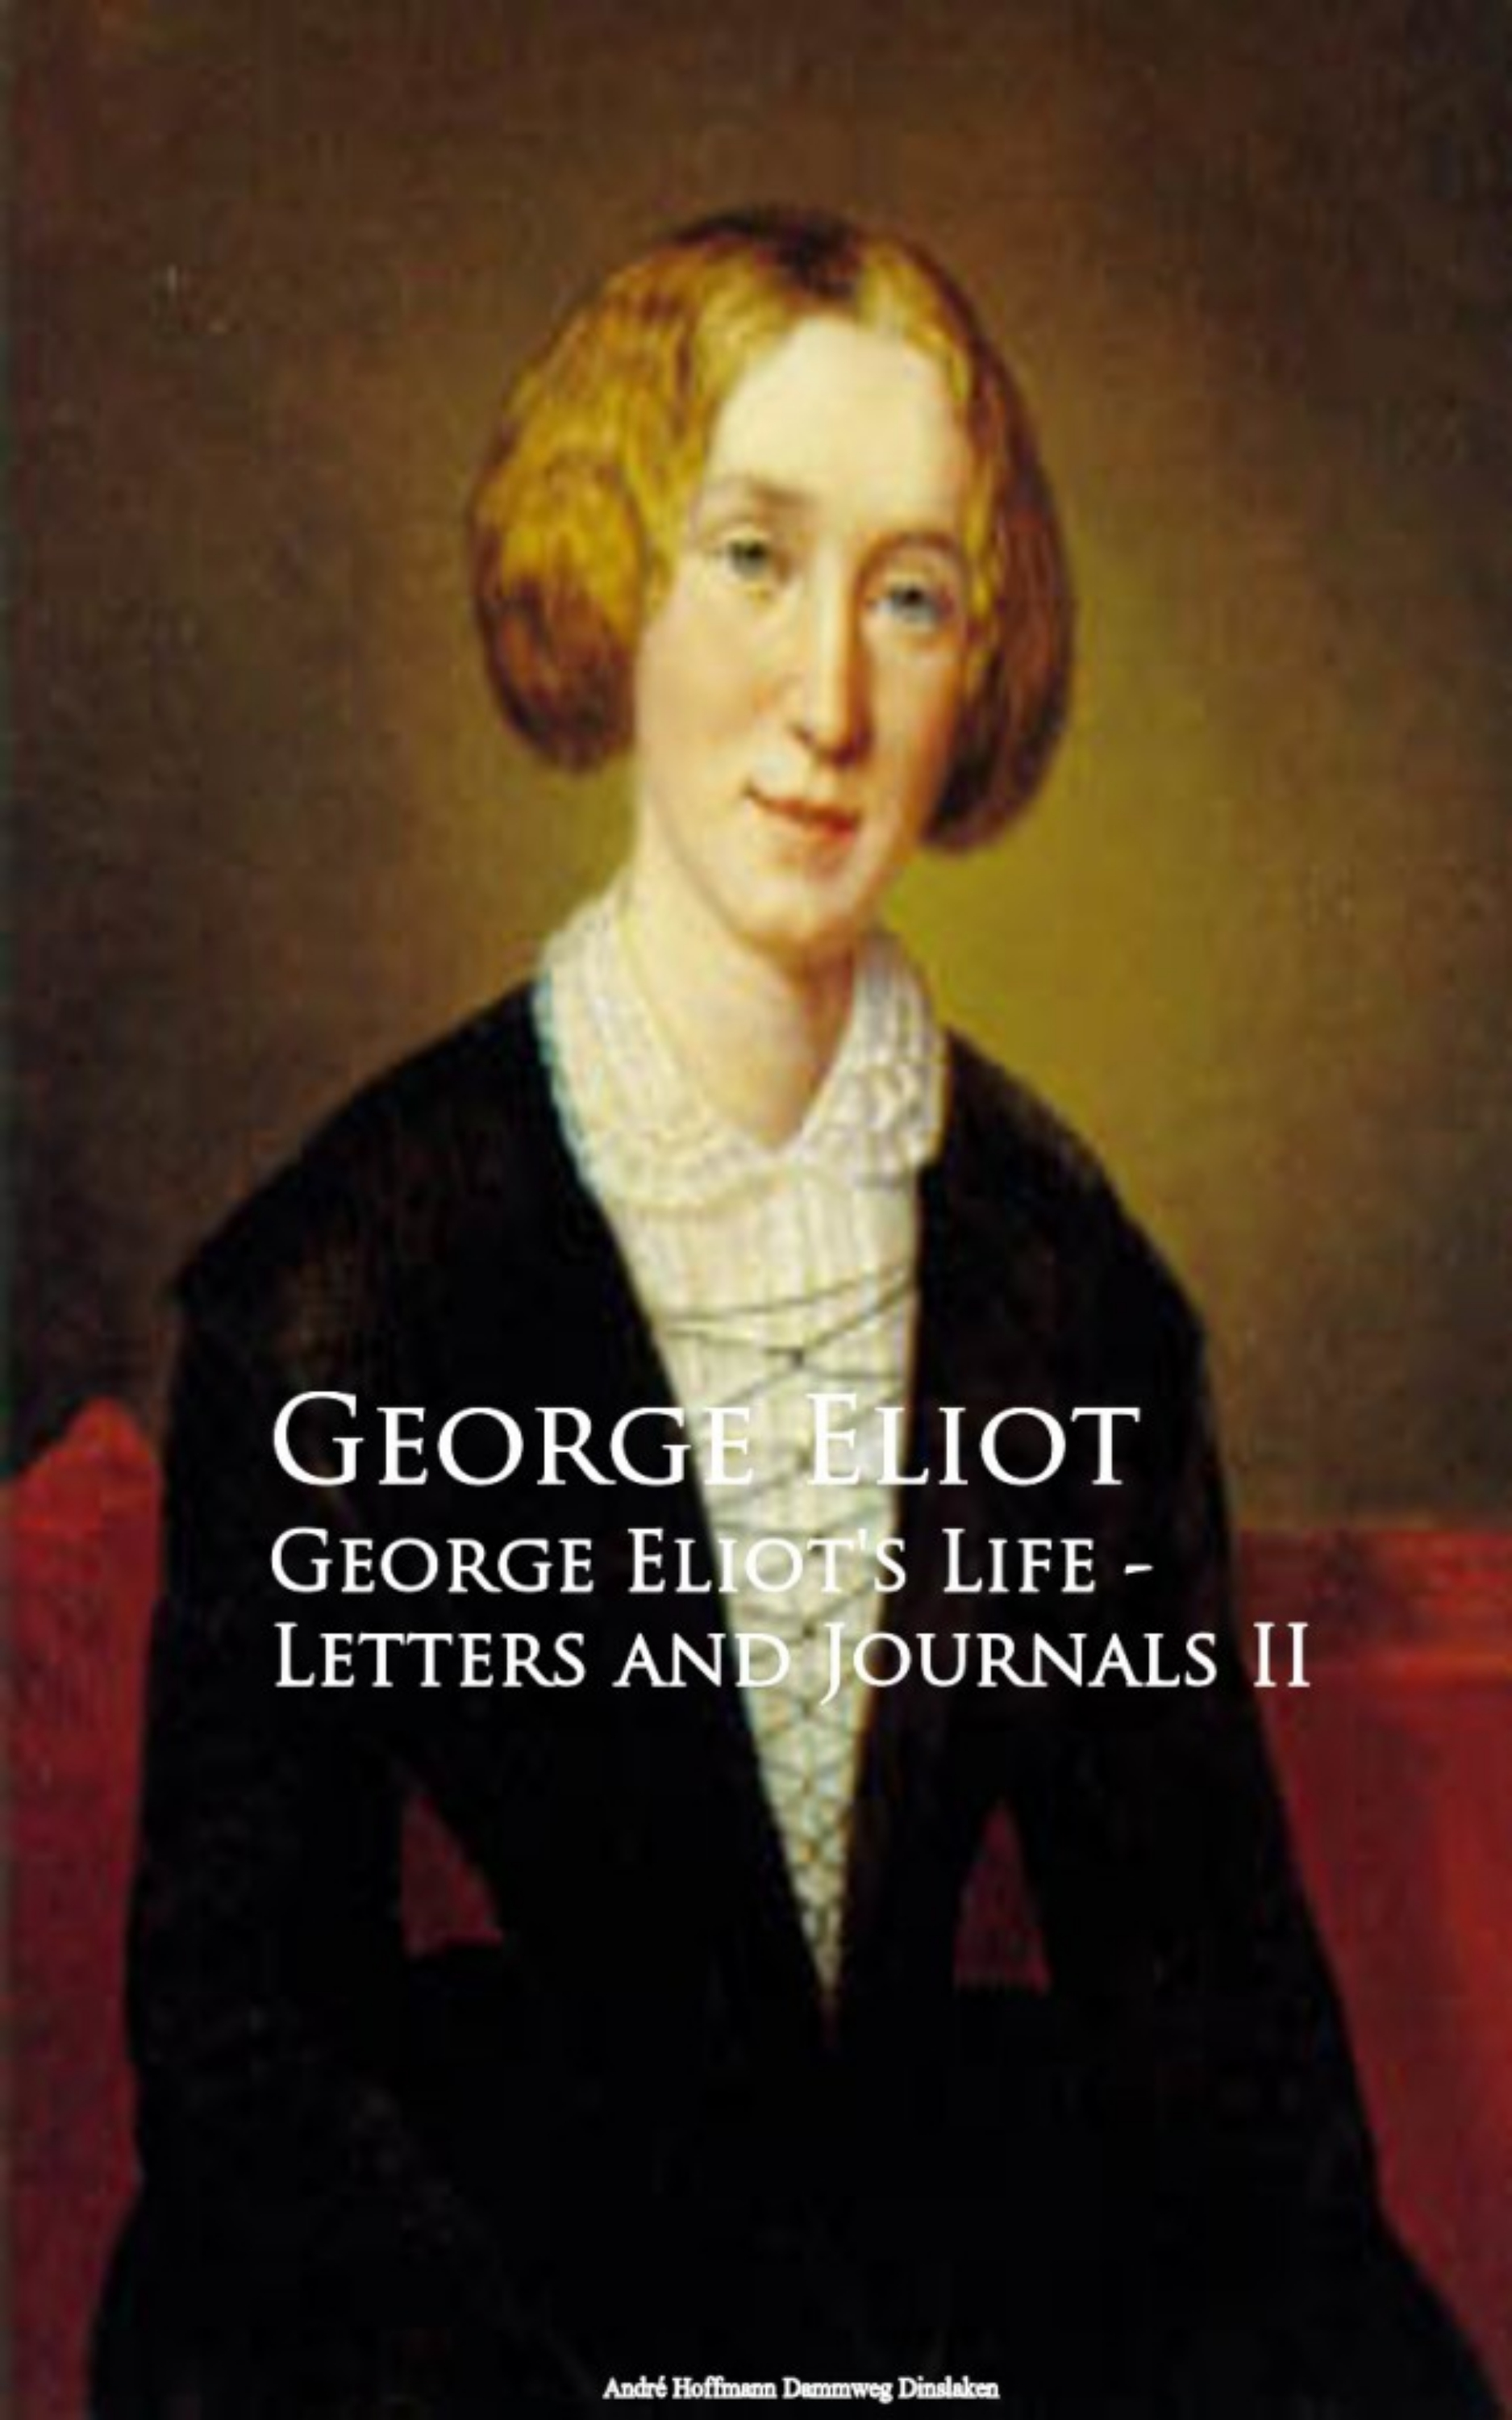 George Eliot George Eliot's Life - Letters and Journals II джордж элиот george eliot s life as related in her letters and journals vol 2 of 3